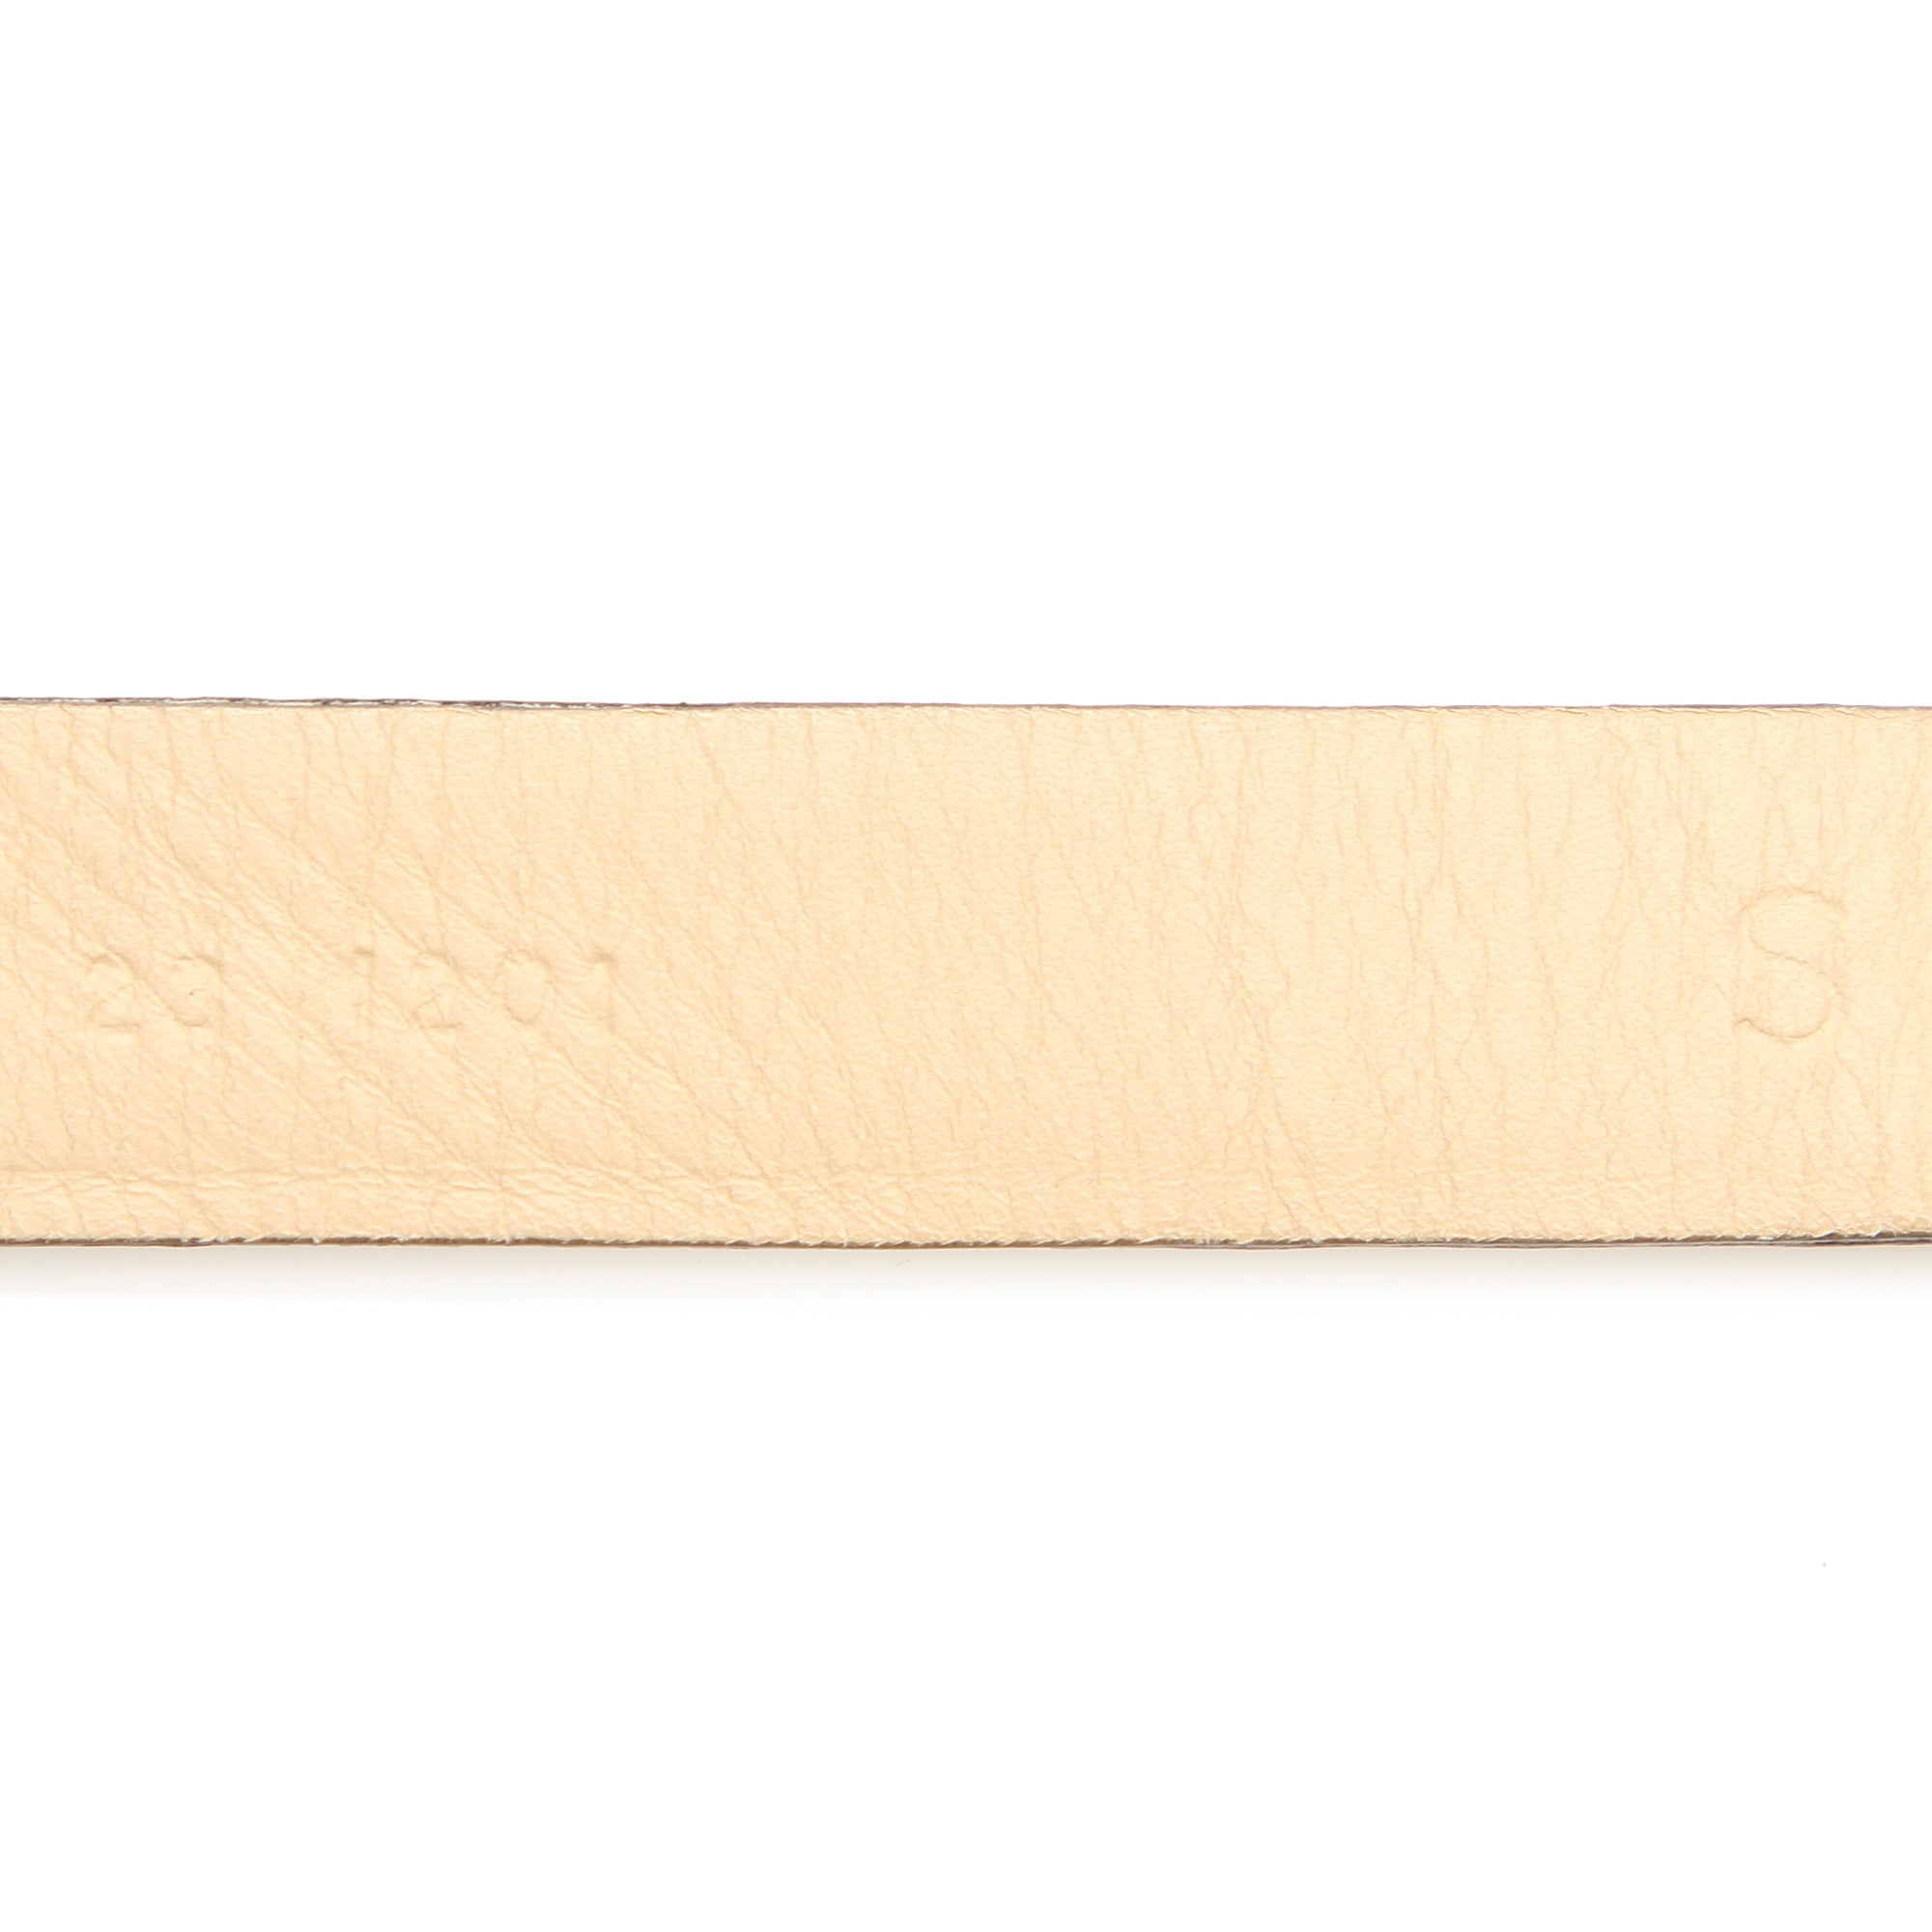 Ferragamo White Python Leather Belt